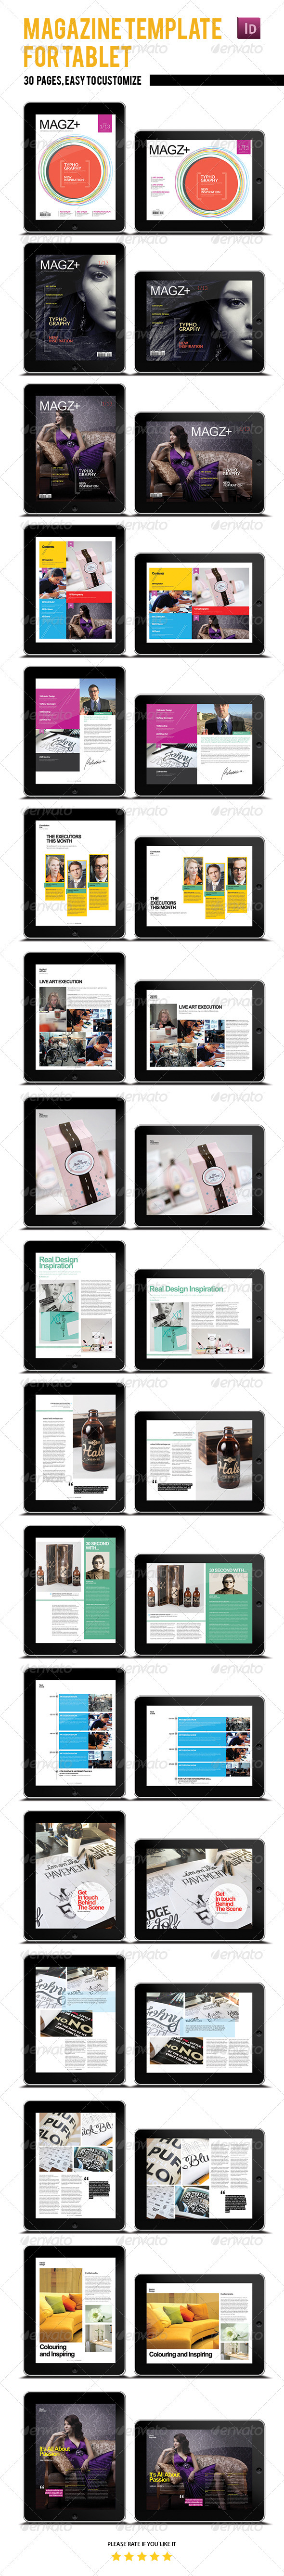 Tablet Magazine Template - Digital Magazines ePublishing